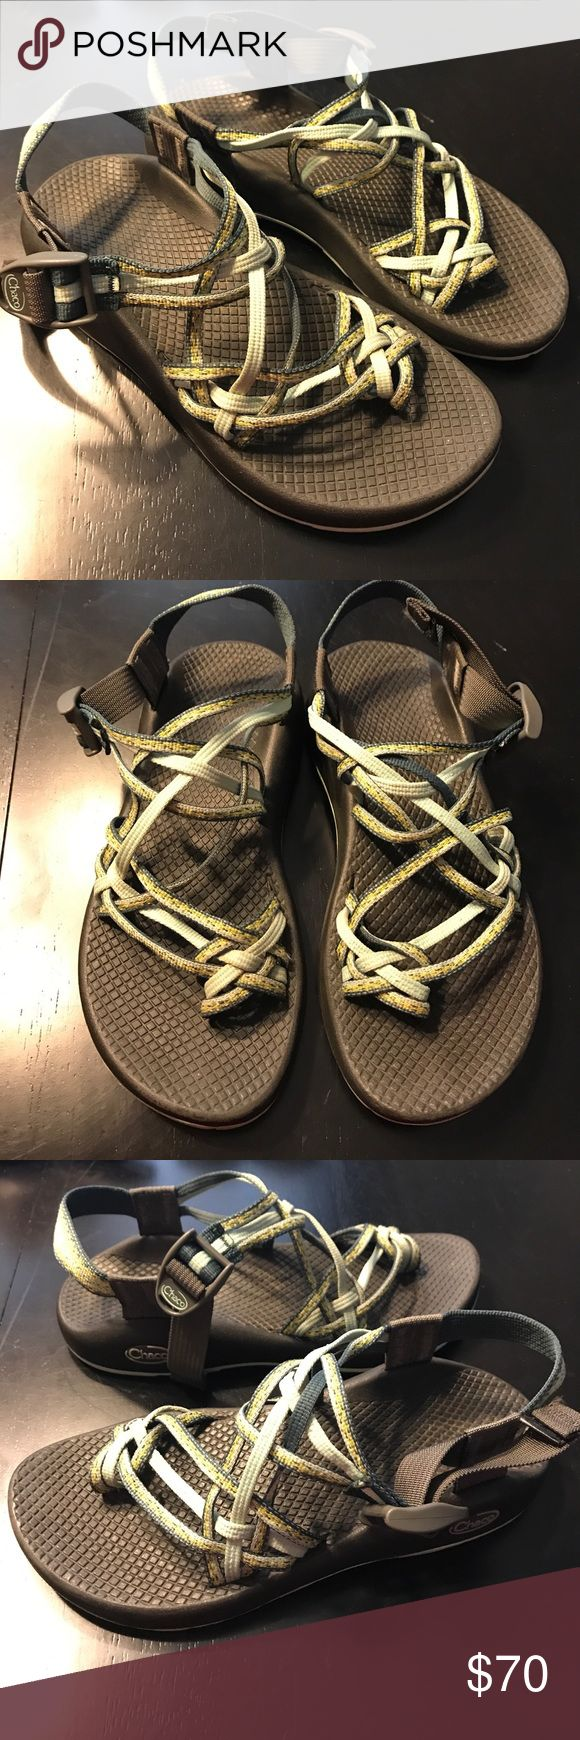 ⭐️ 1 hr sale ⭐️Women's chaco sandals 💕 Women's chaco sandals size 7. In great condition! Chaco Shoes Sandals